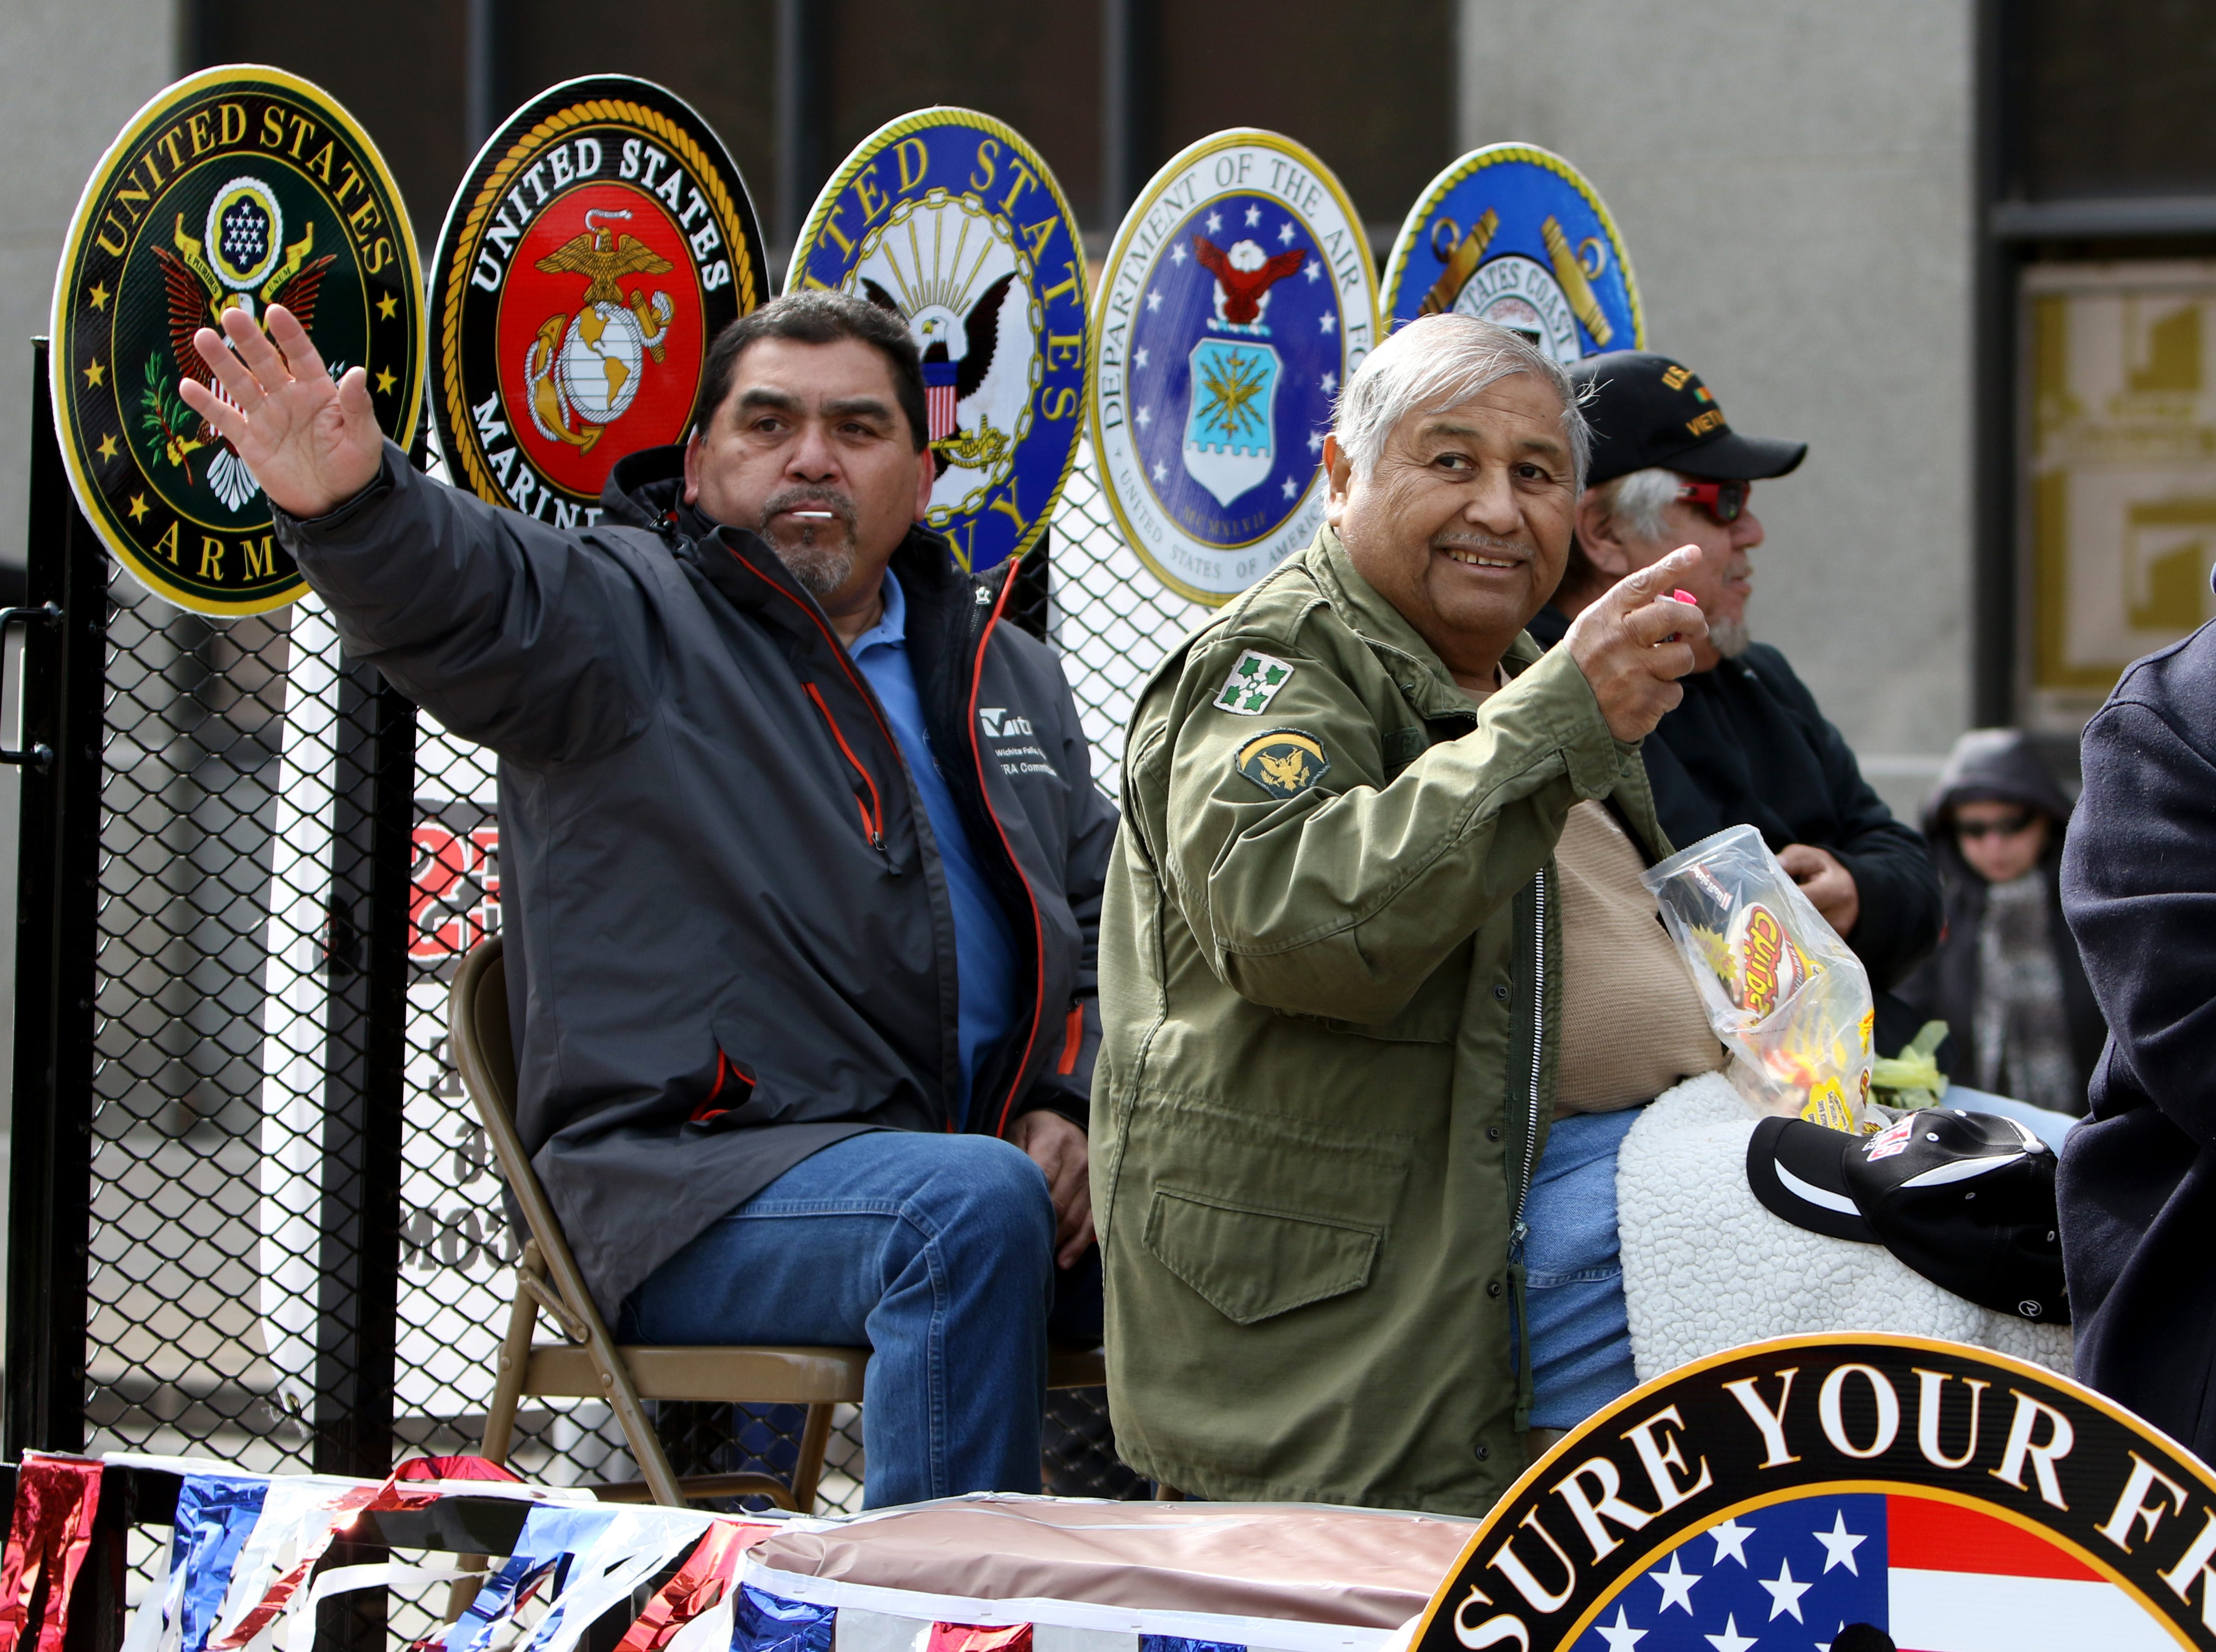 The Mexican American Veterans Association takes part in the Veterans Day parade Saturday, Nov. 10, 2018, in downtown Wichita Falls on the 100th anniversary of the Armistice of Compiègne that ended fighting in World War I.